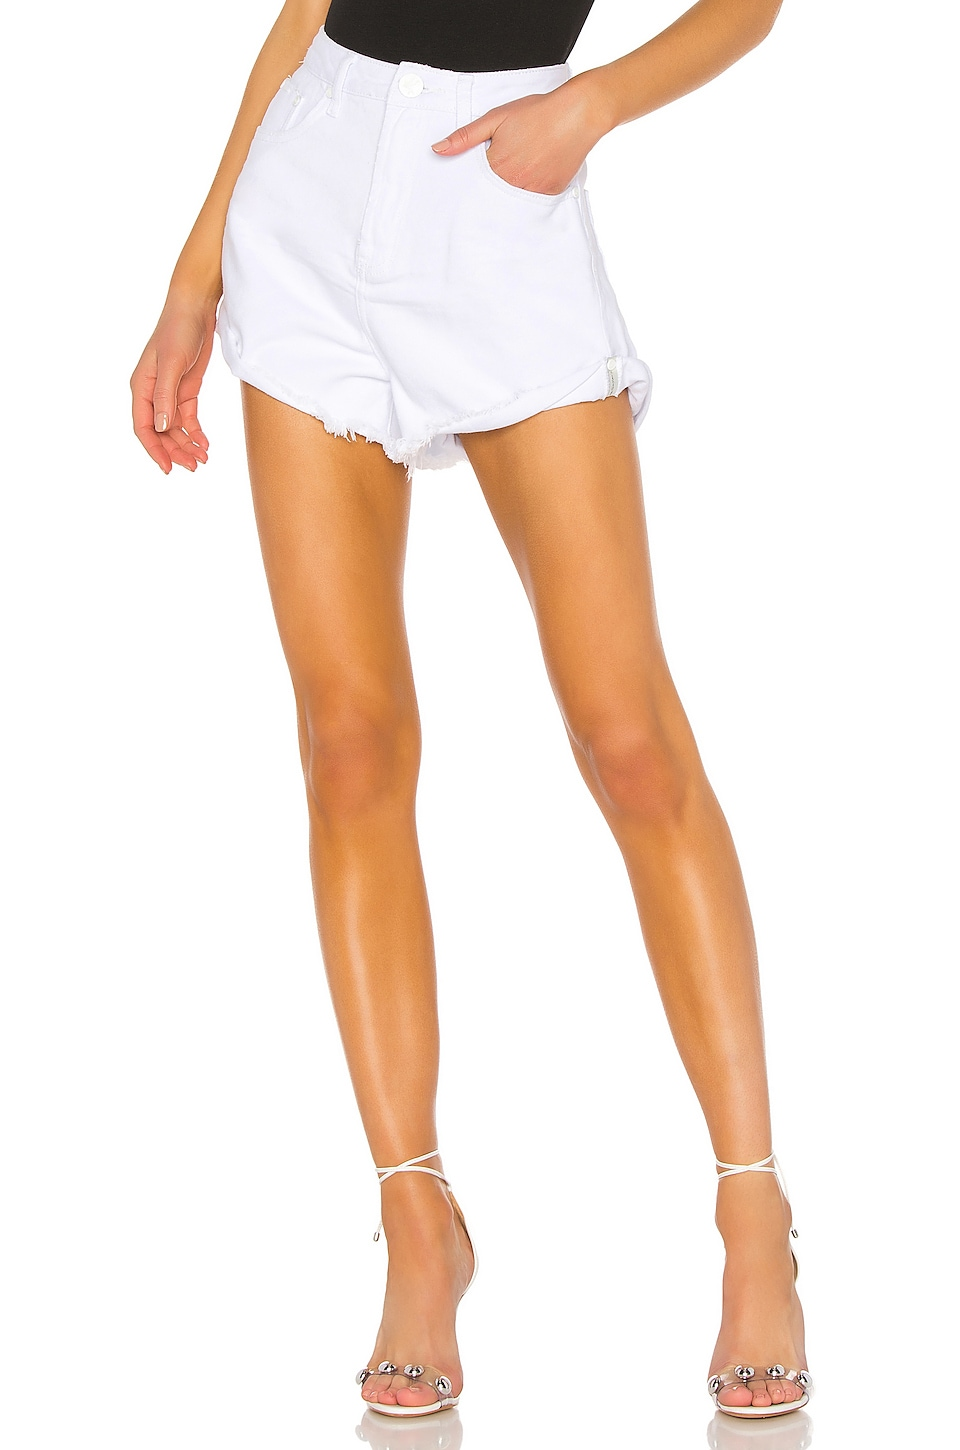 One Teaspoon Bandits High Waist Short in White Beauty